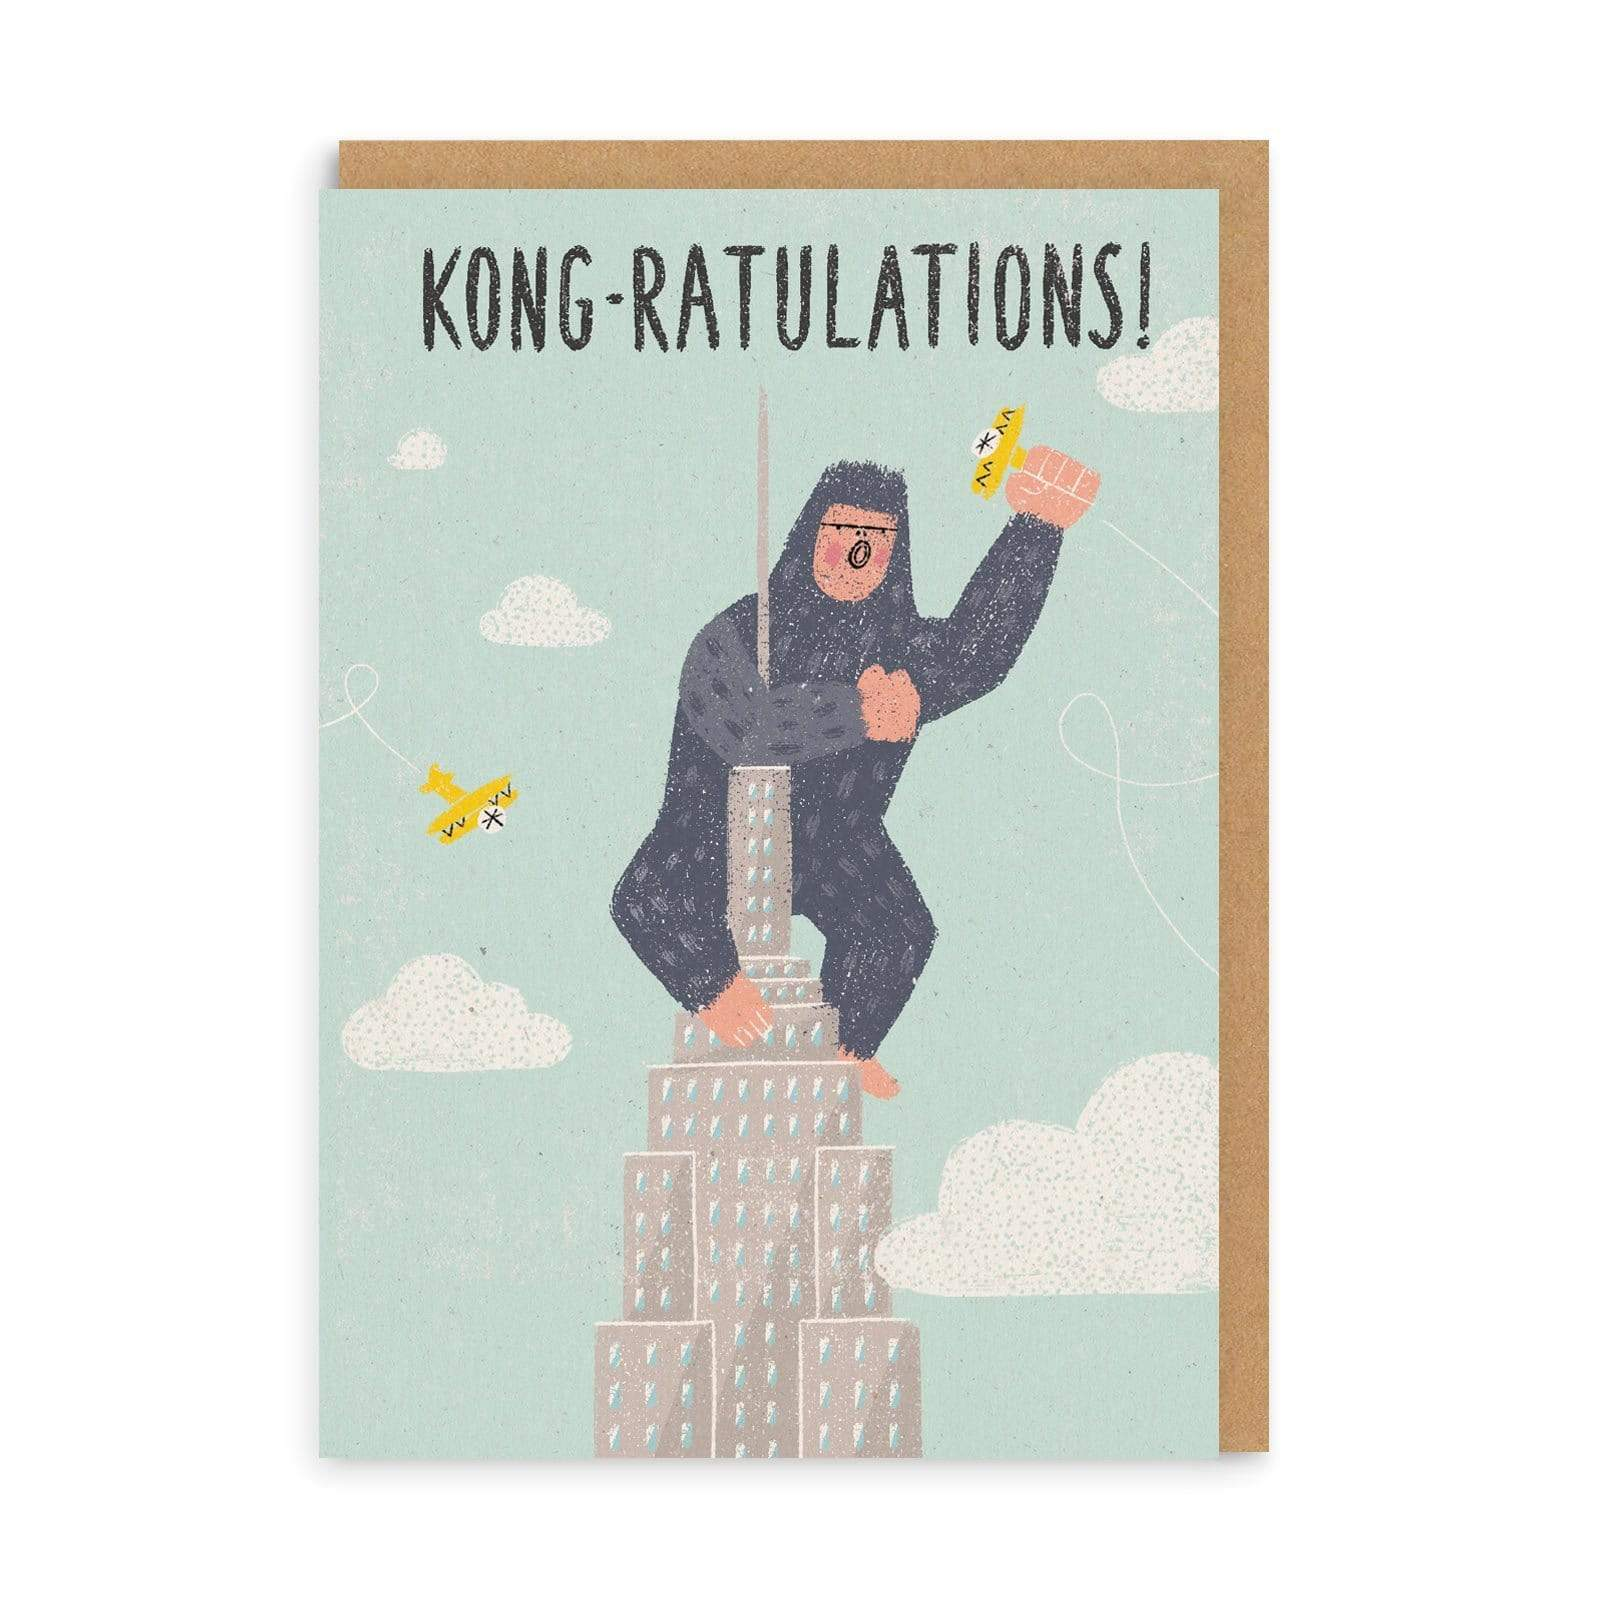 Kongratulations Greeting Card